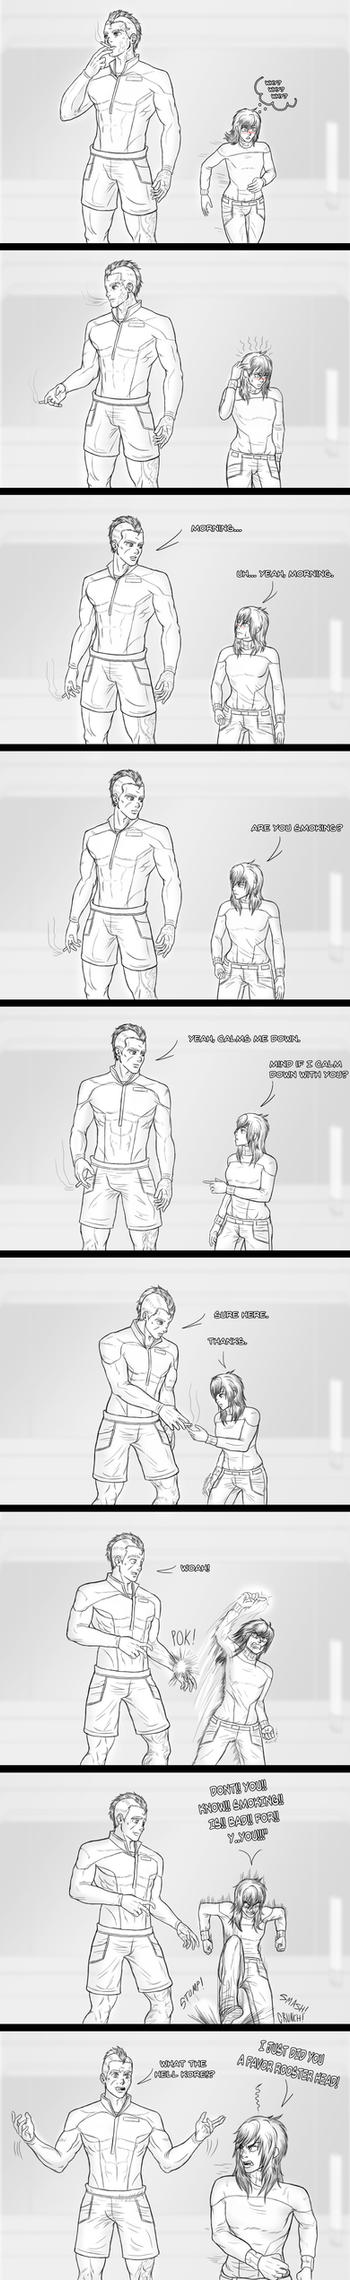 Shore Leave: Why? by Guyver89